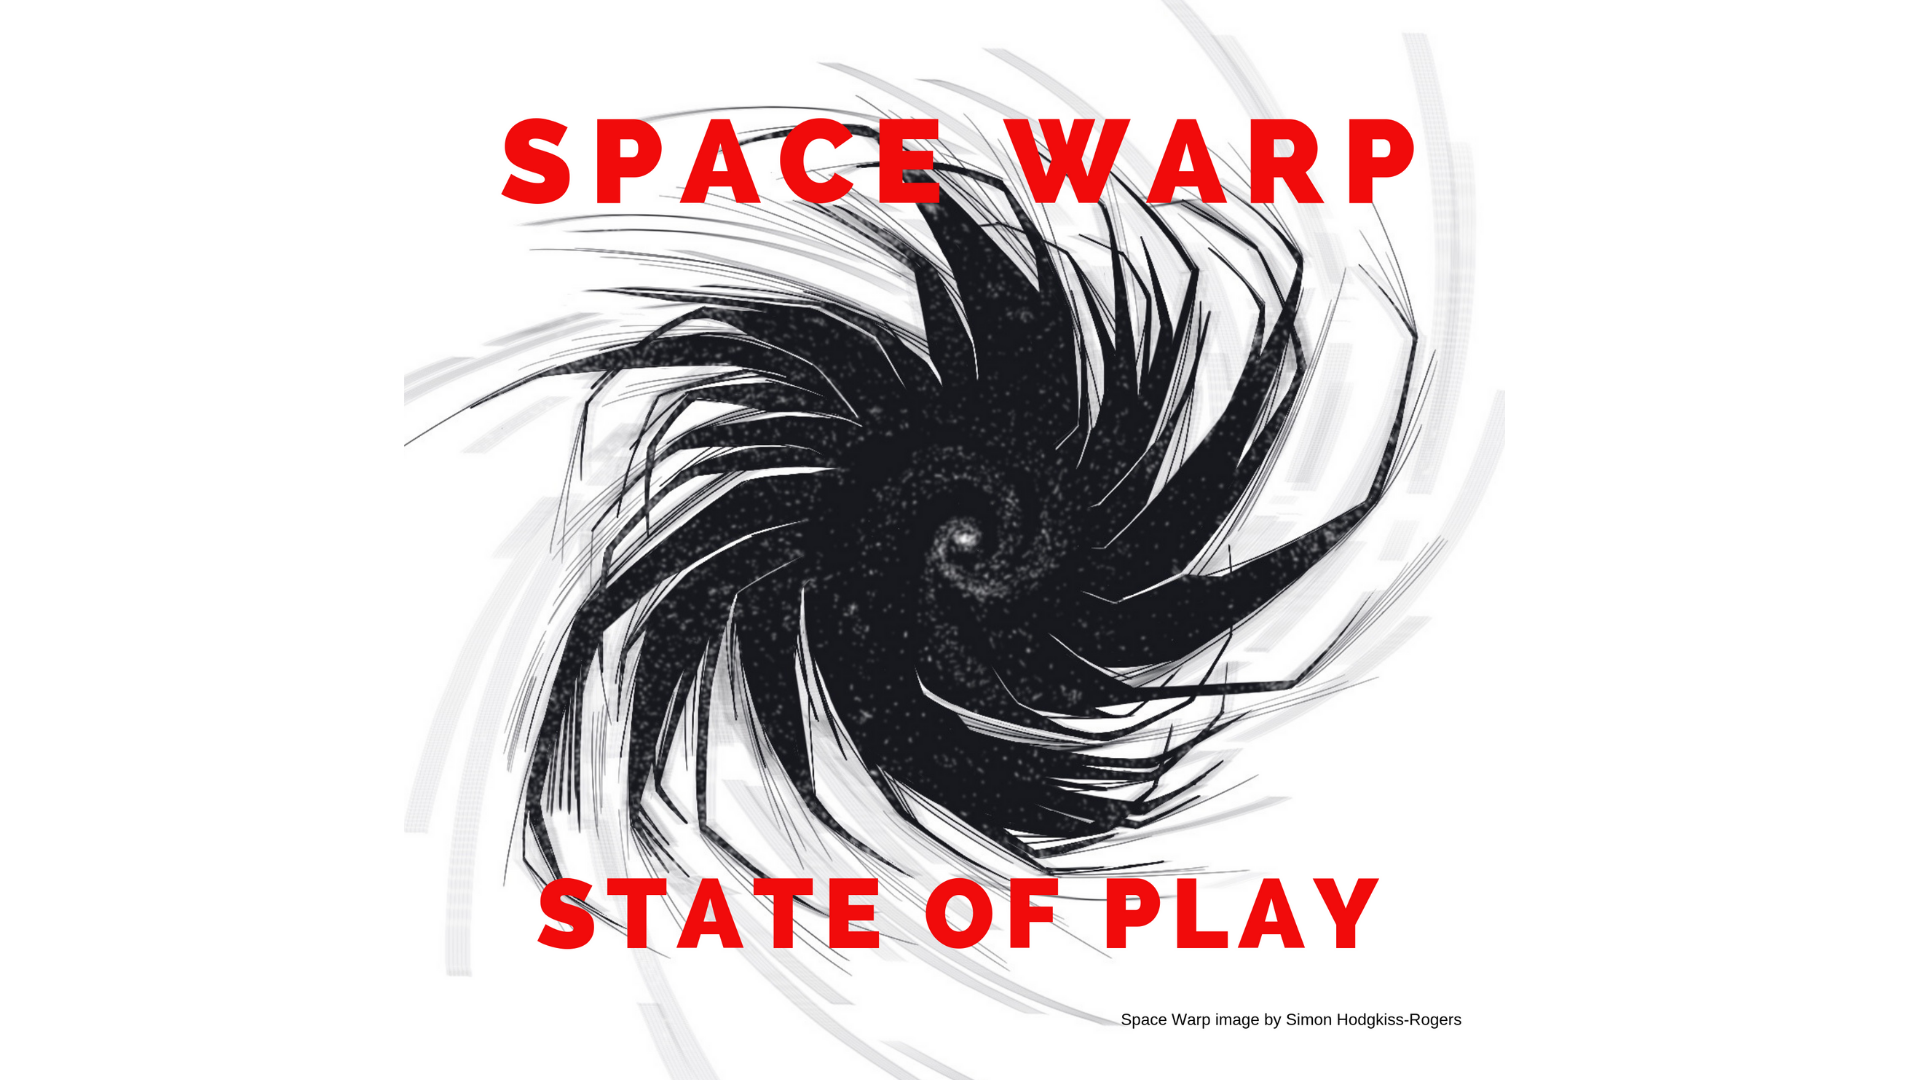 Space Warp state of play featured image